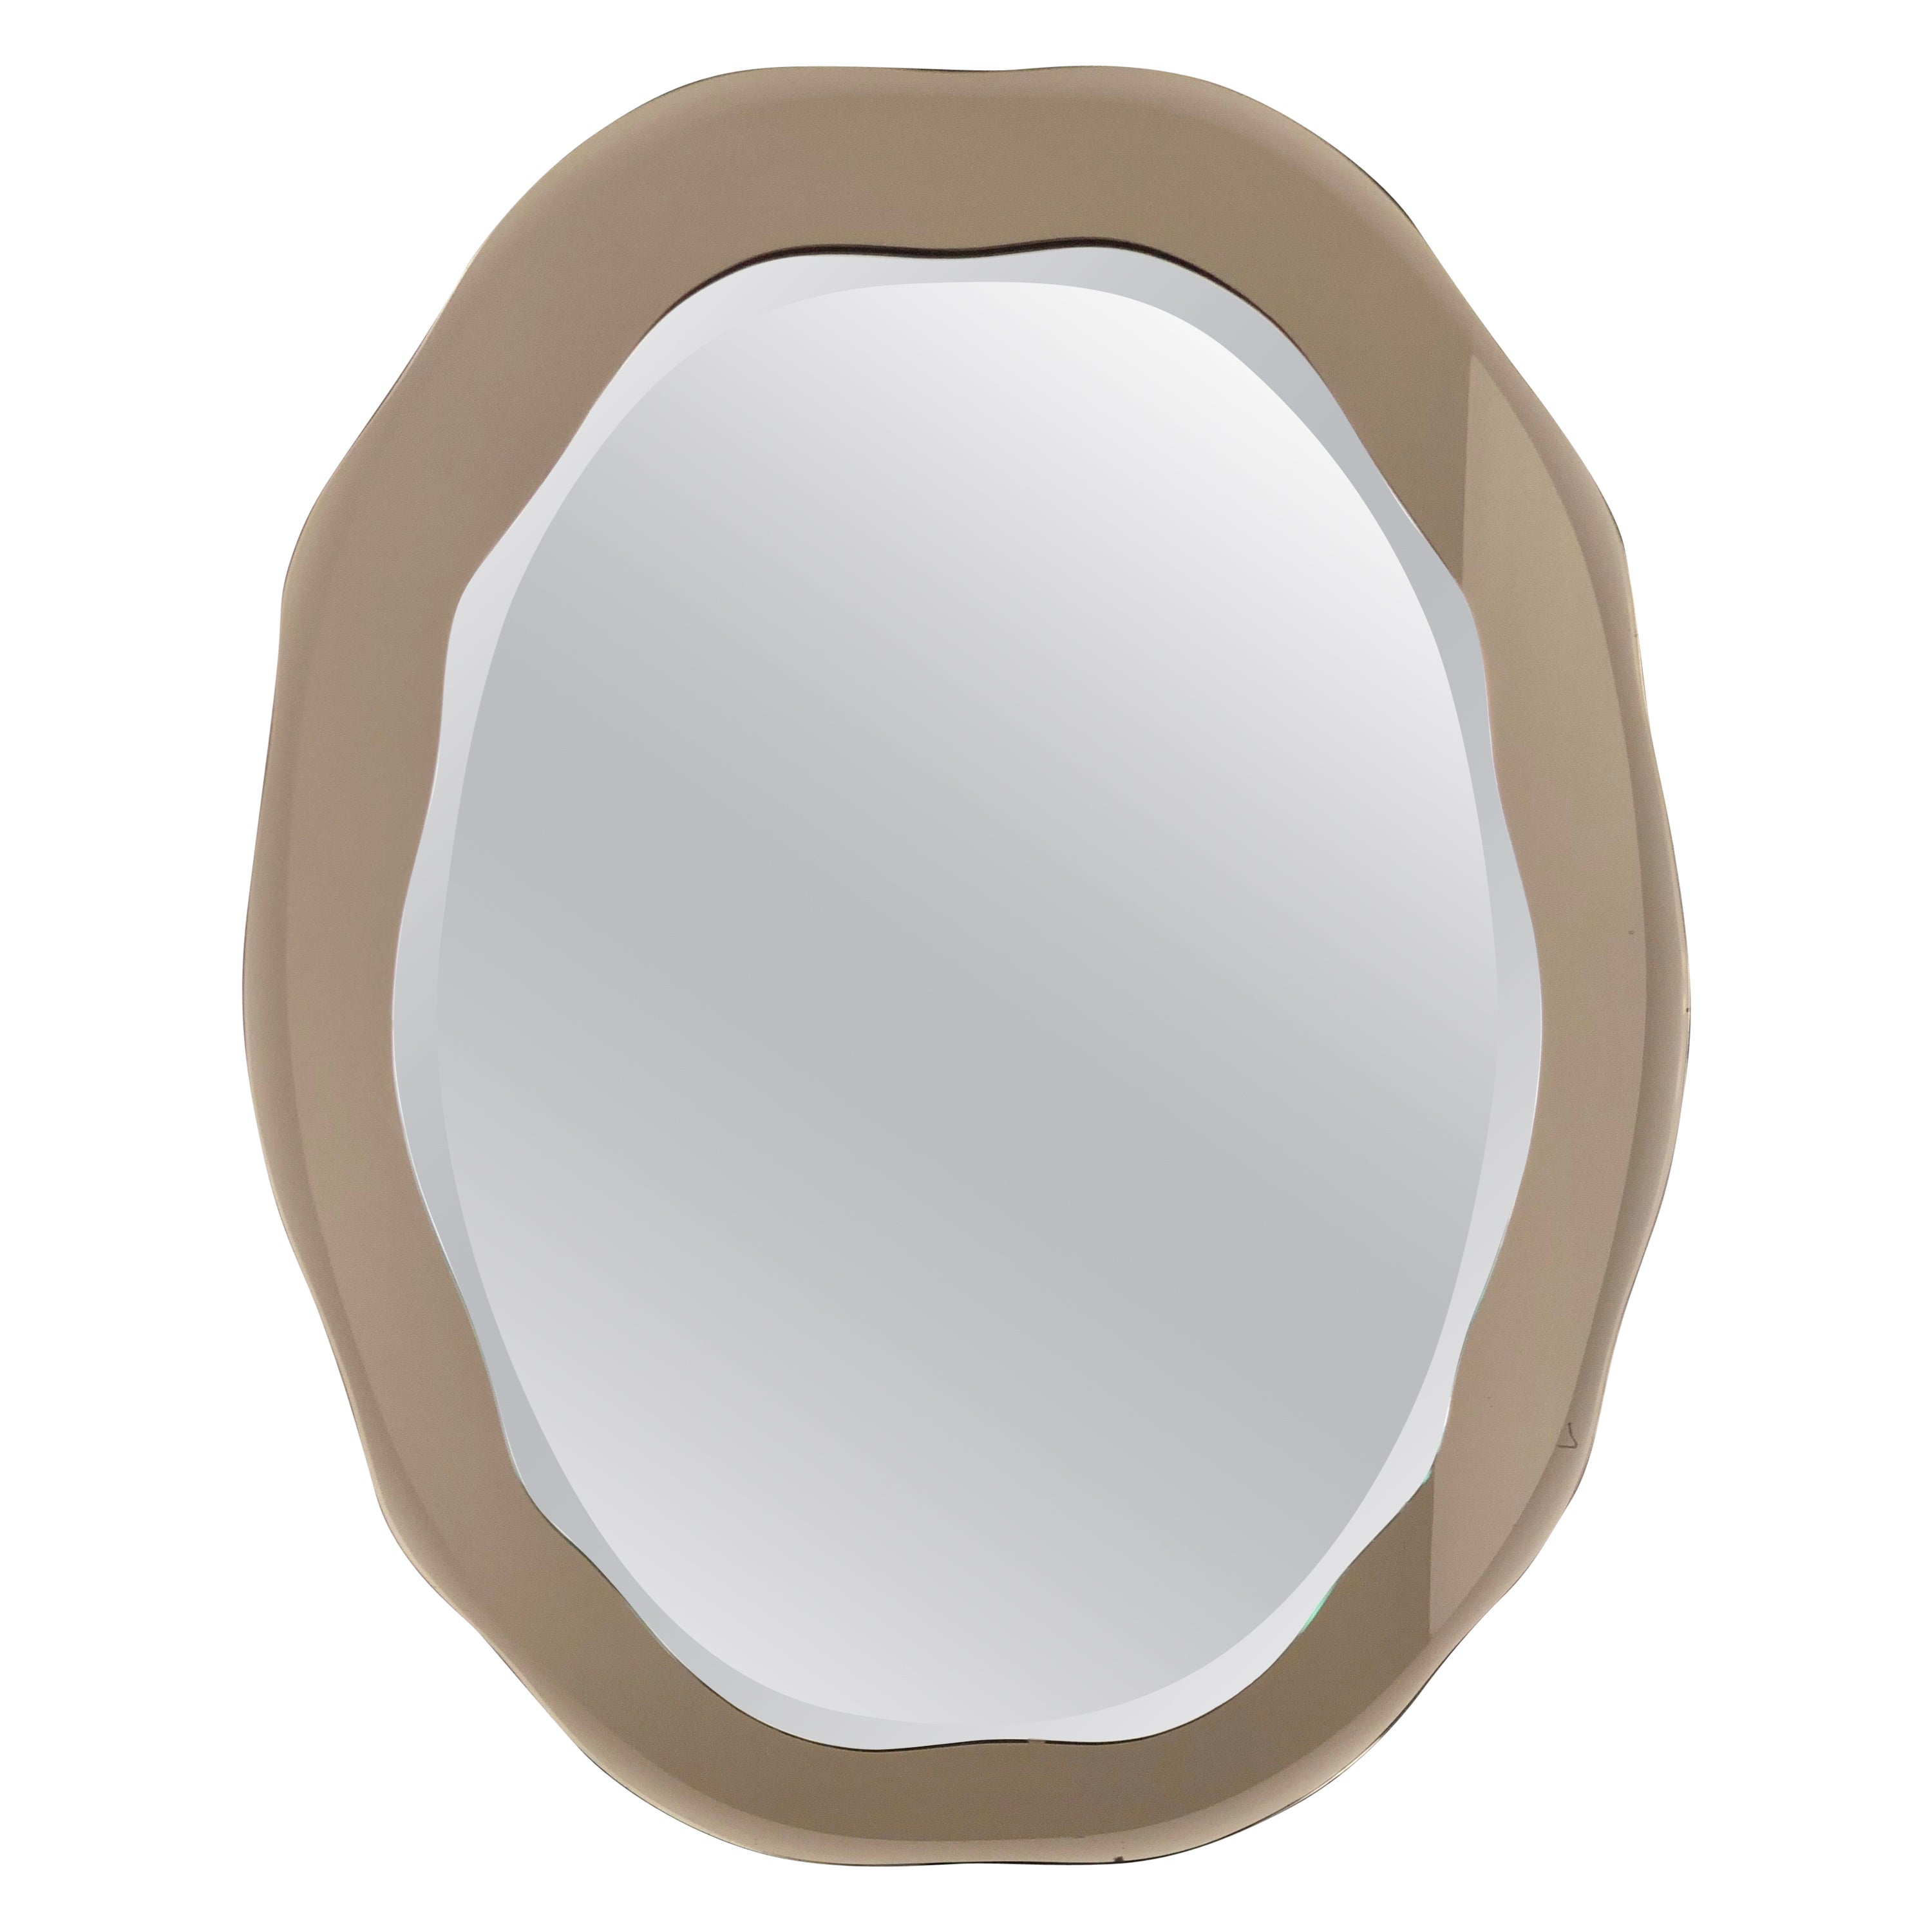 Wall Mirror by Cristal Arte, Italy, 1960s, Mid-Century Modern Style